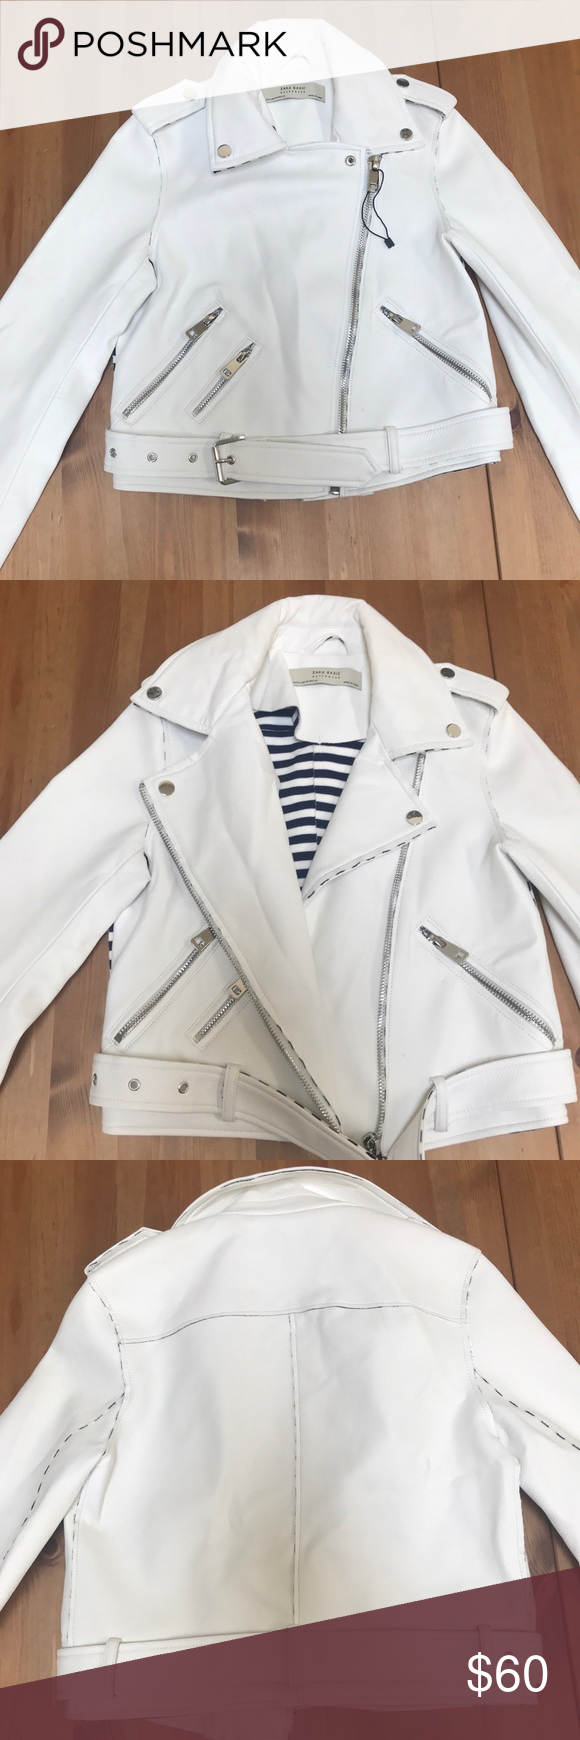 Zara Basics White leather jacket NWOT faux leather biker